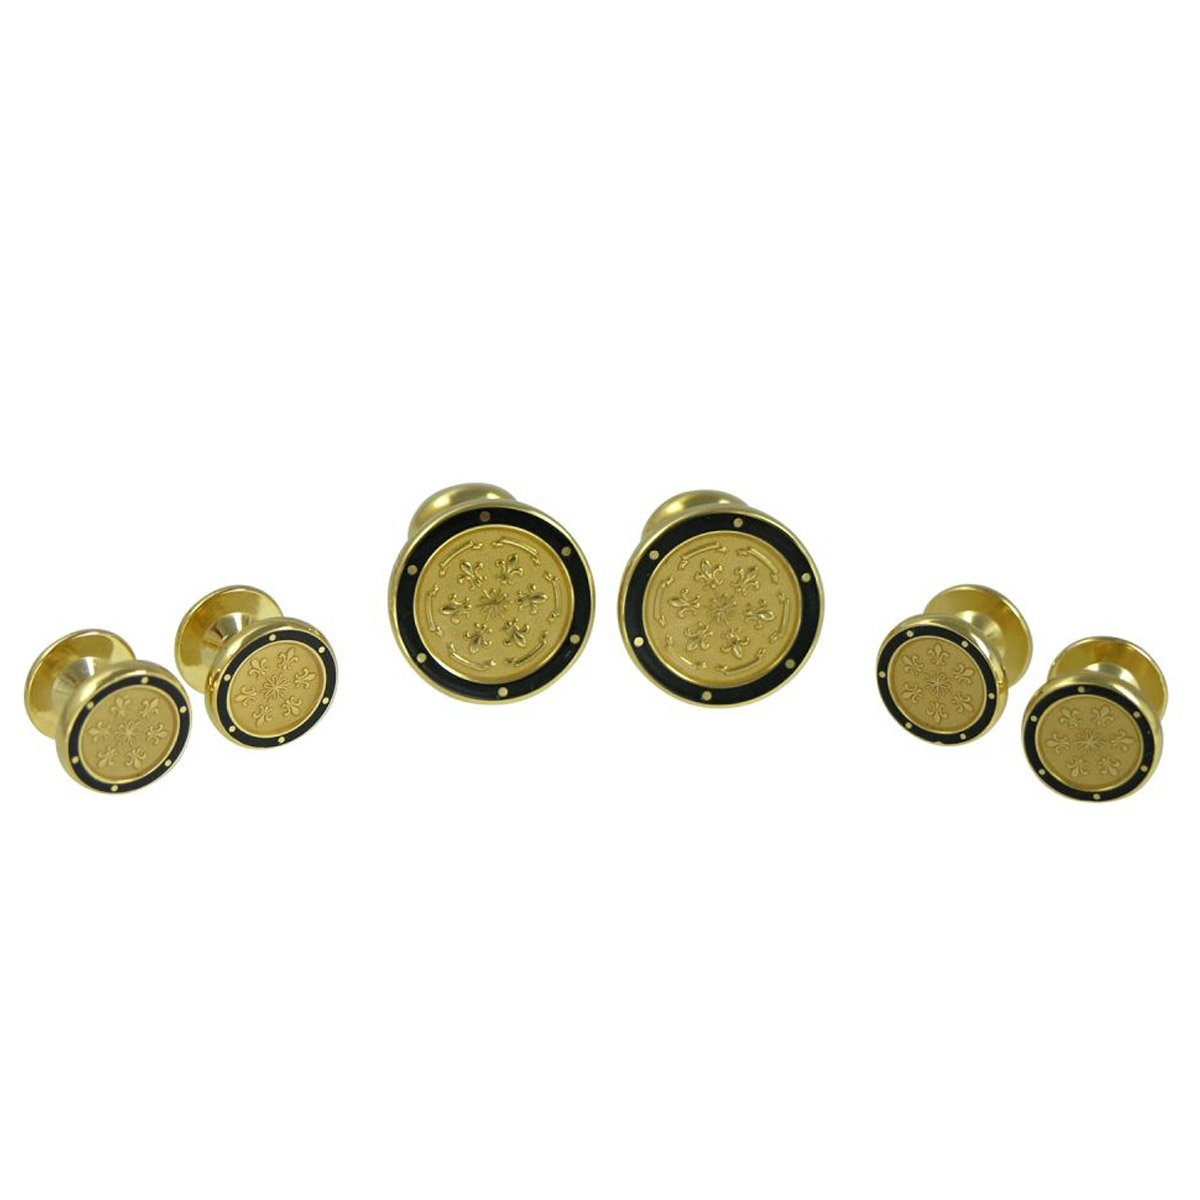 Baade Round black and Goldtone Floral Shirt Stud Cufflinks Set